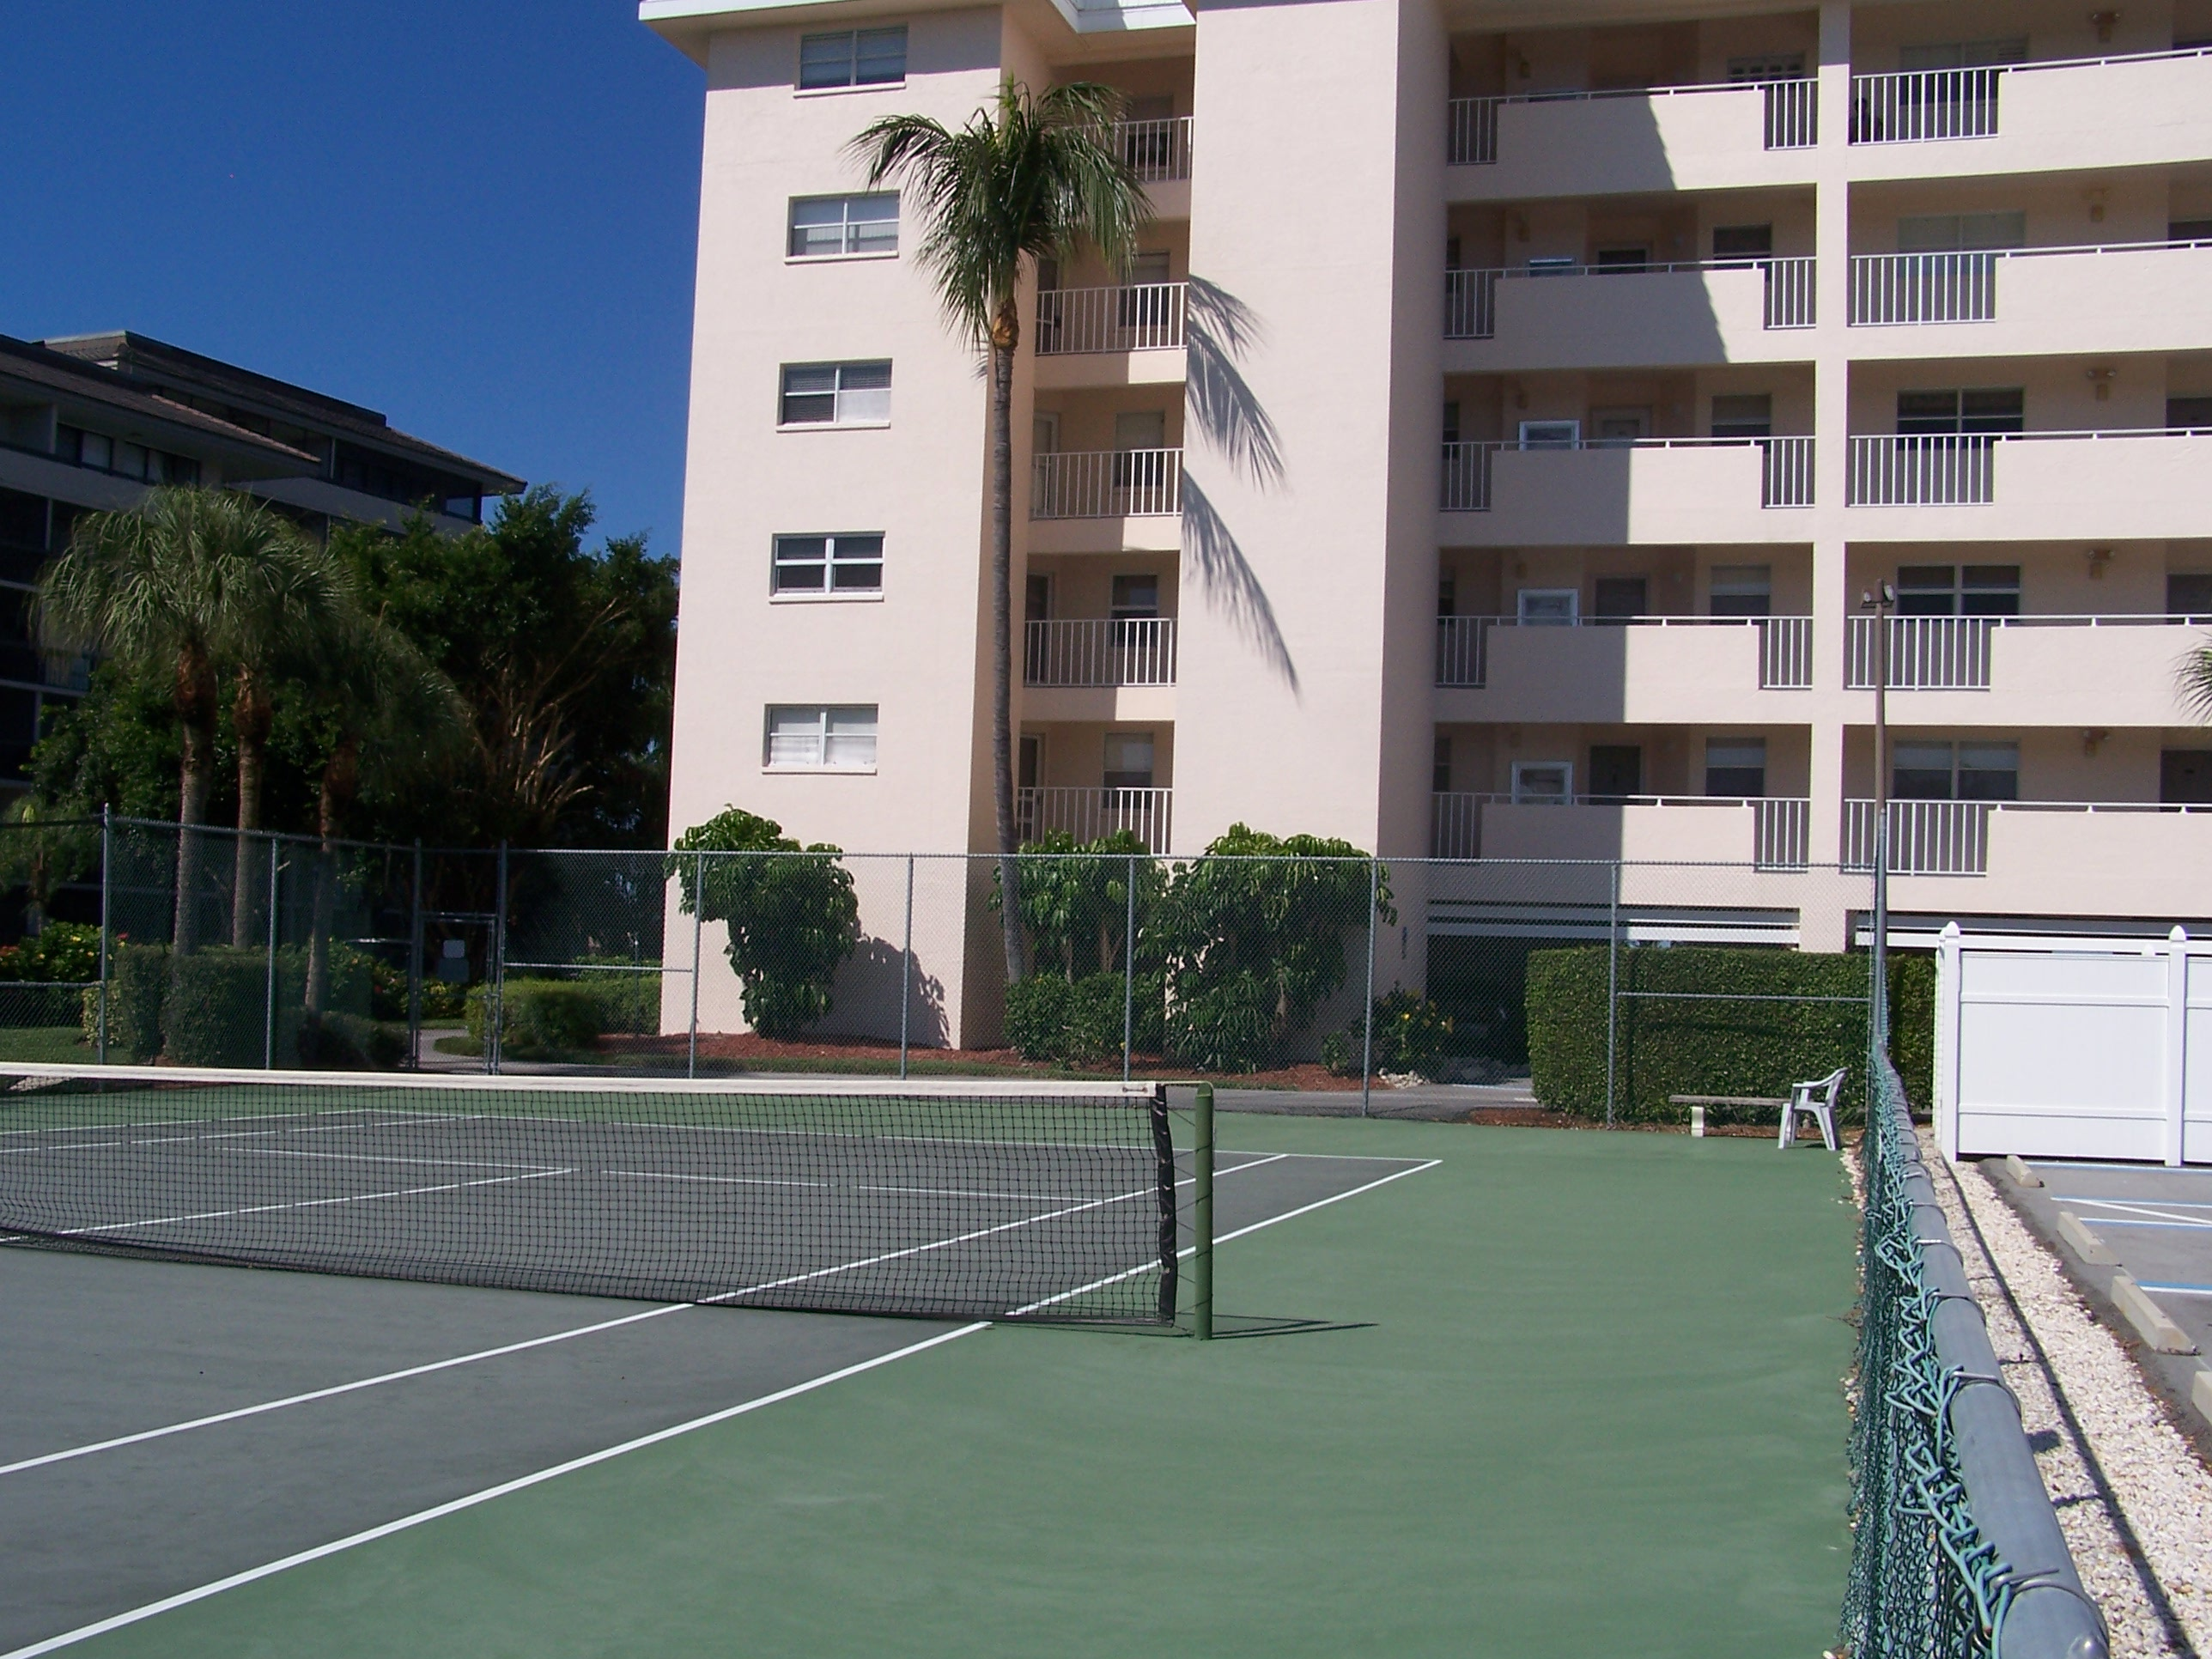 Susses Tennis Courts